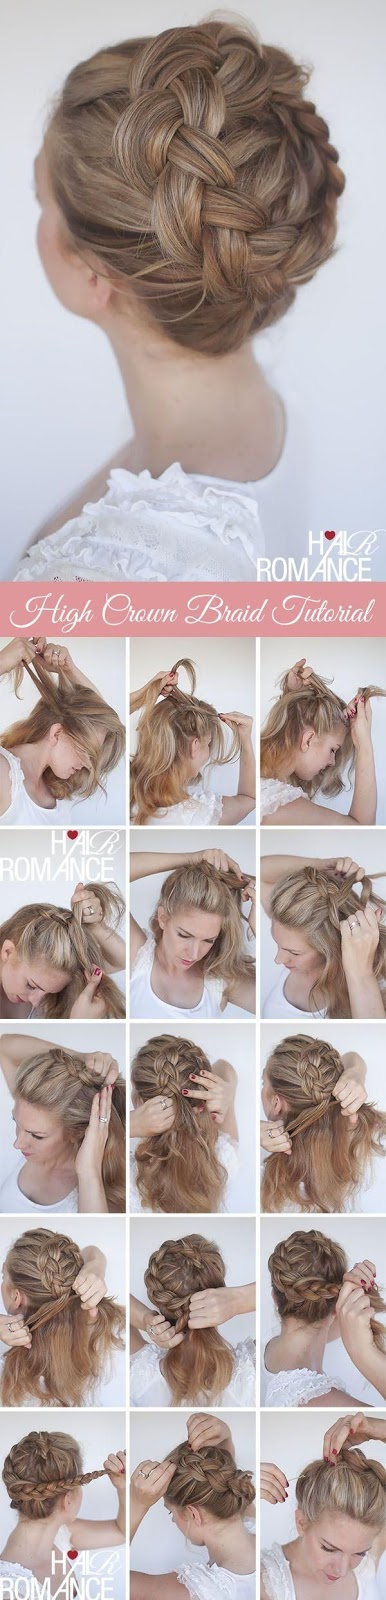 http://www.hairromance.com/2014/03/new-braid-tutorial-the-high-braided-crown-hairstyle.html